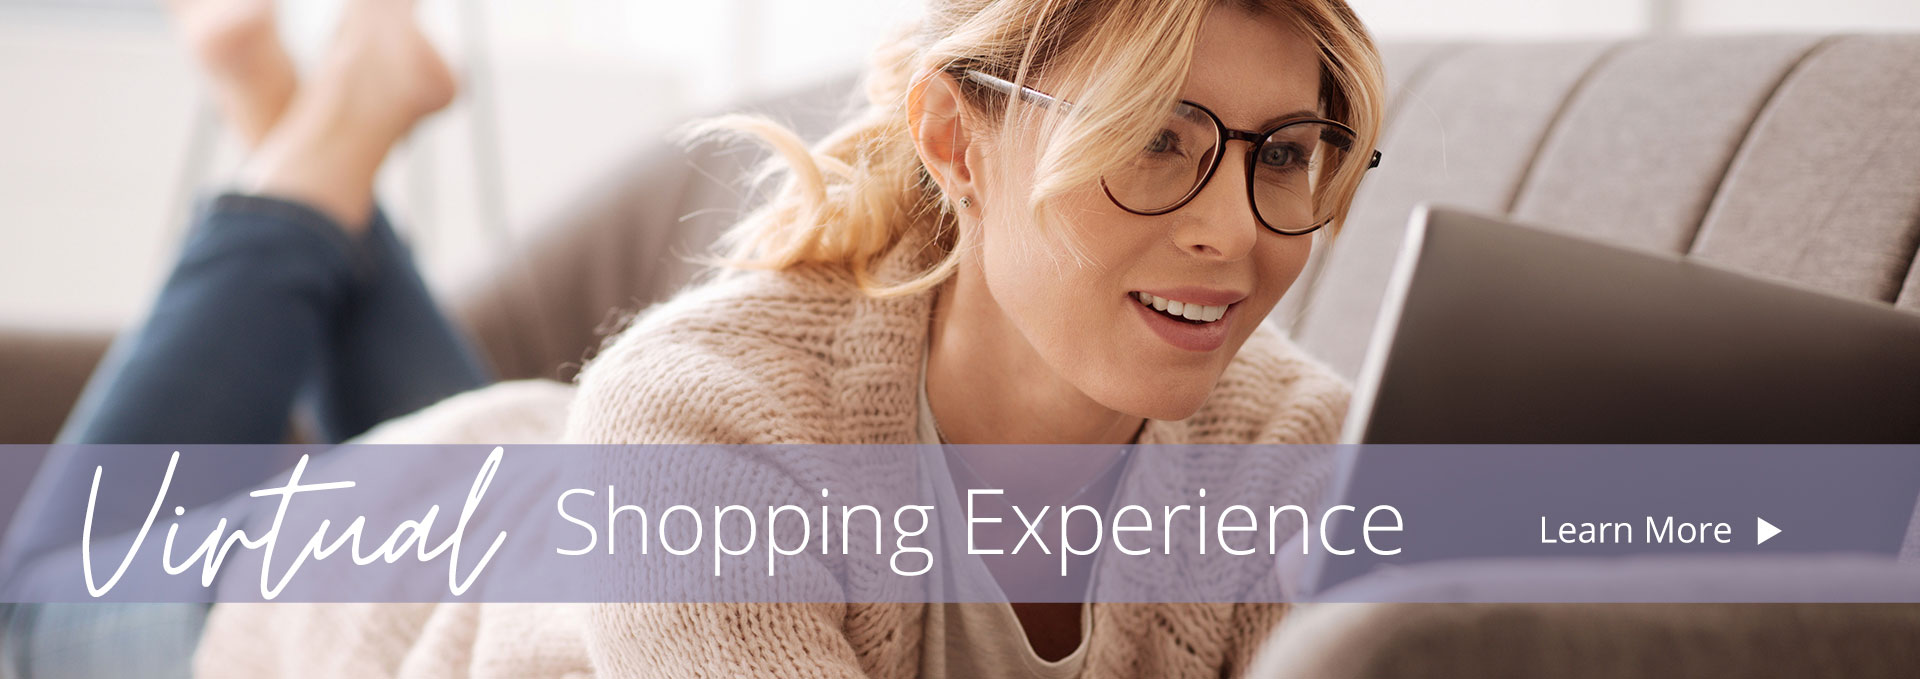 Virtual Shopping Experience